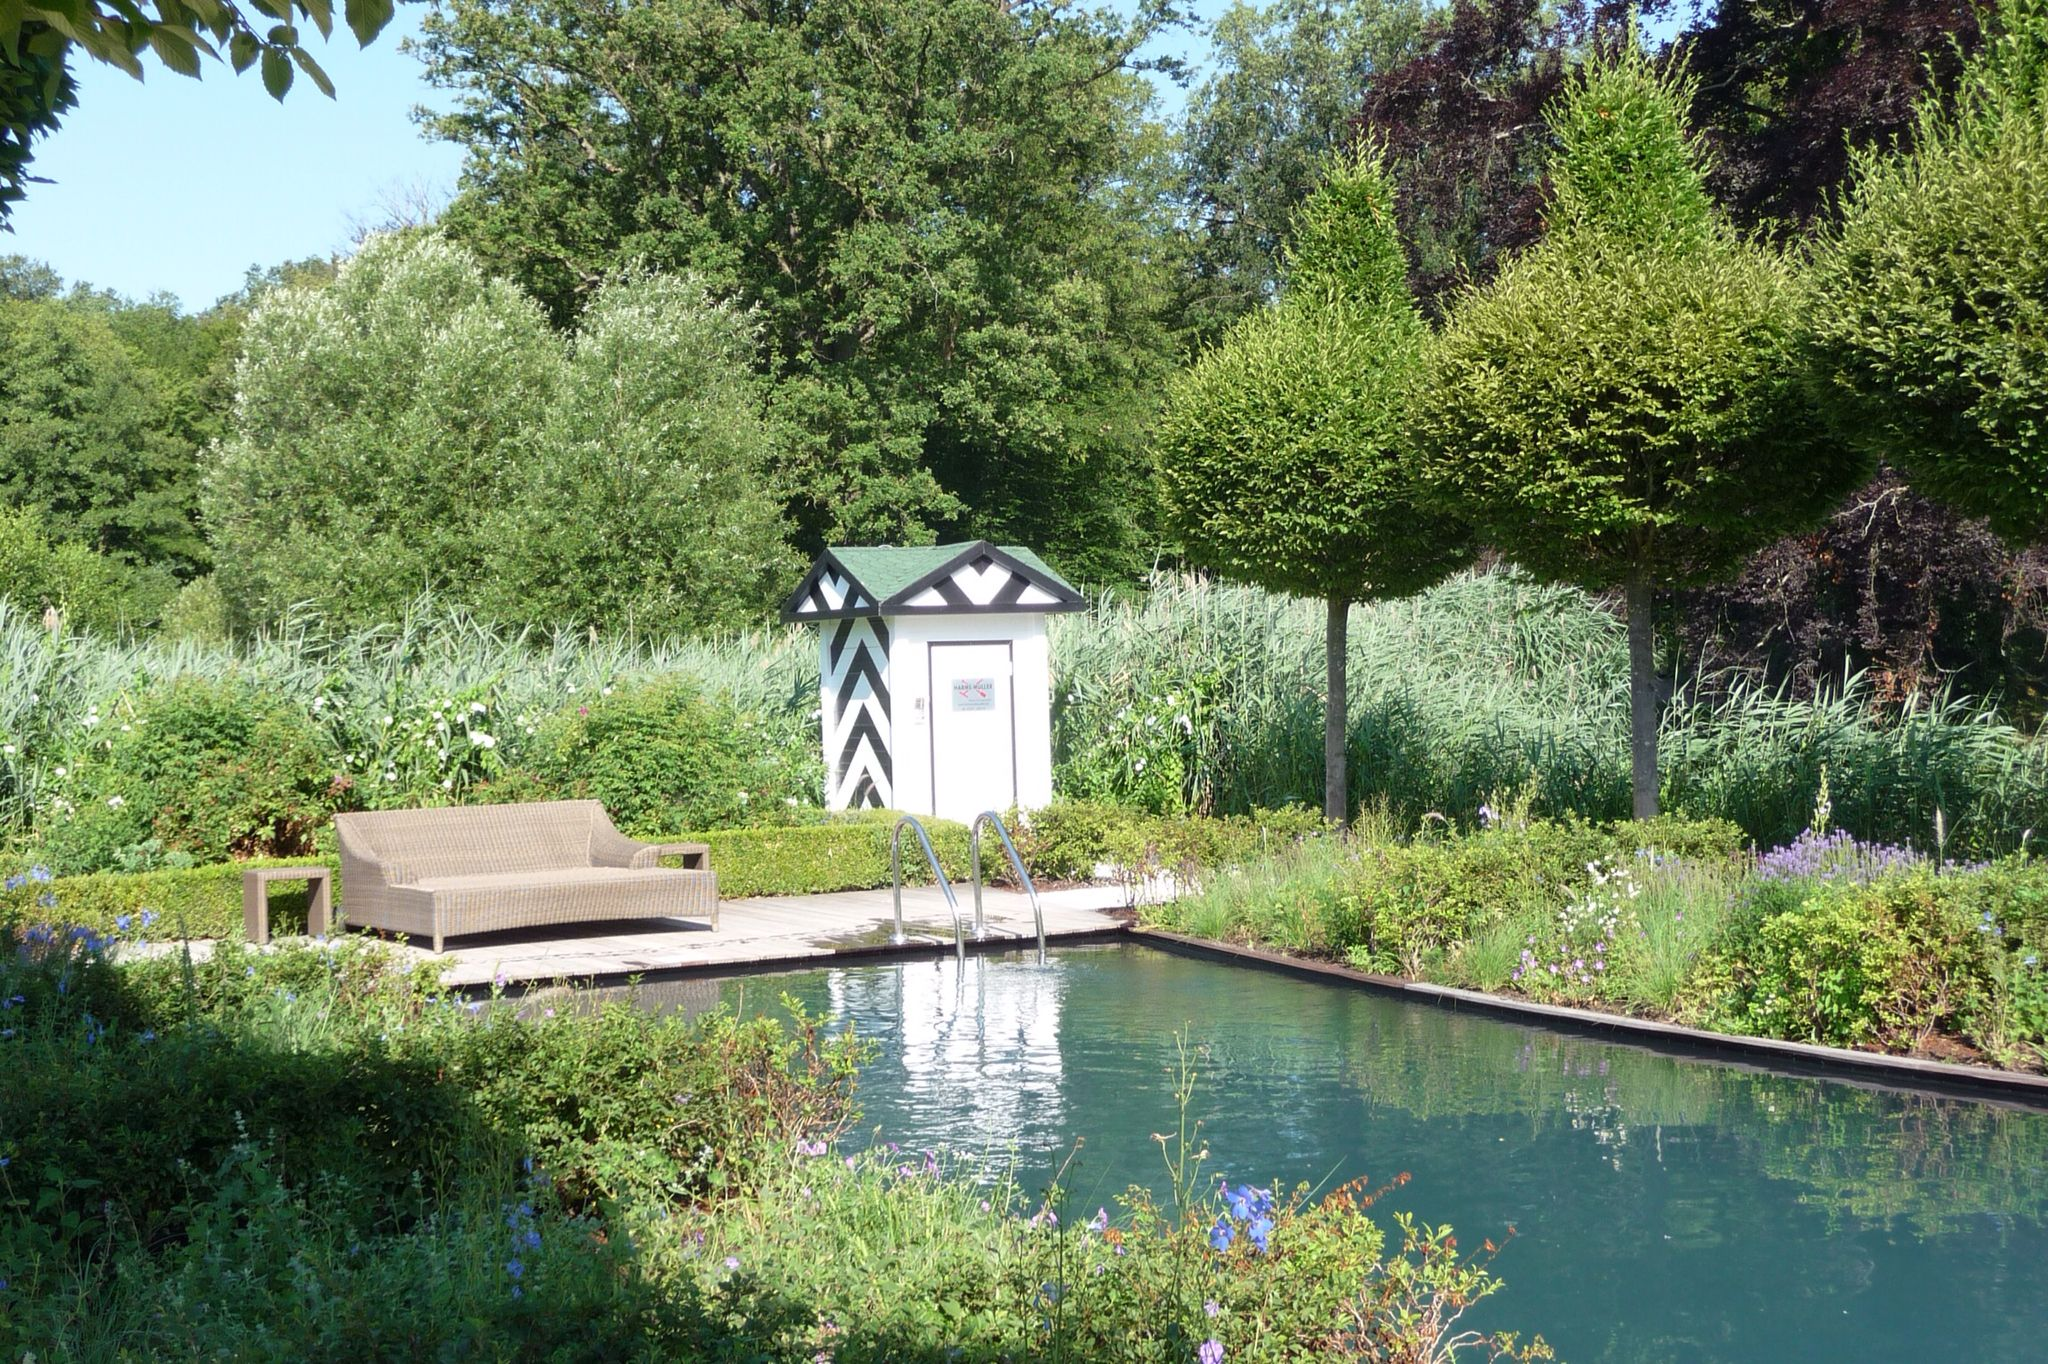 schaugarten harms m ller schwimmteich salzwasser pool mit pumpenhaus f r filteranlage. Black Bedroom Furniture Sets. Home Design Ideas